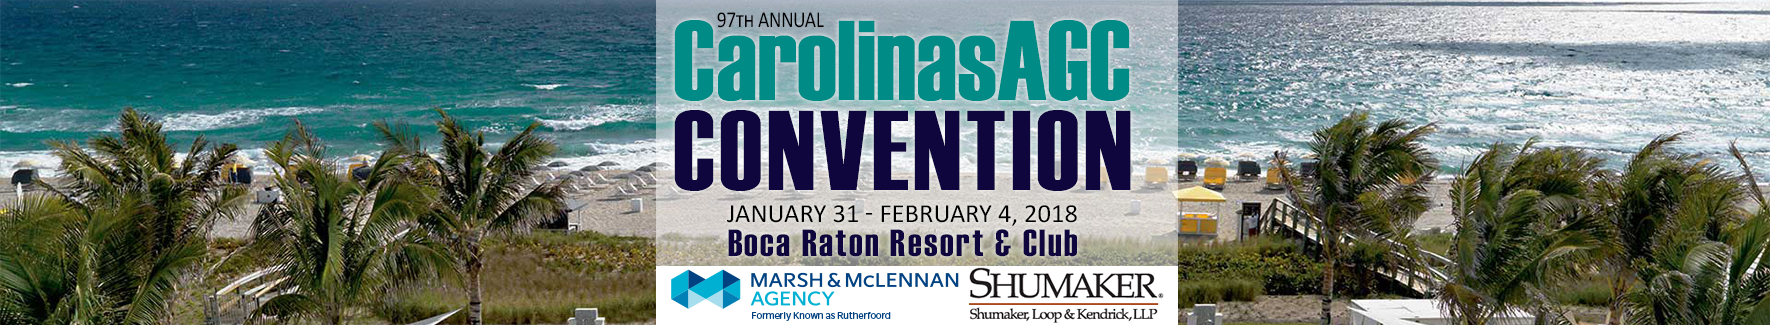 2018 Convention Web Banner